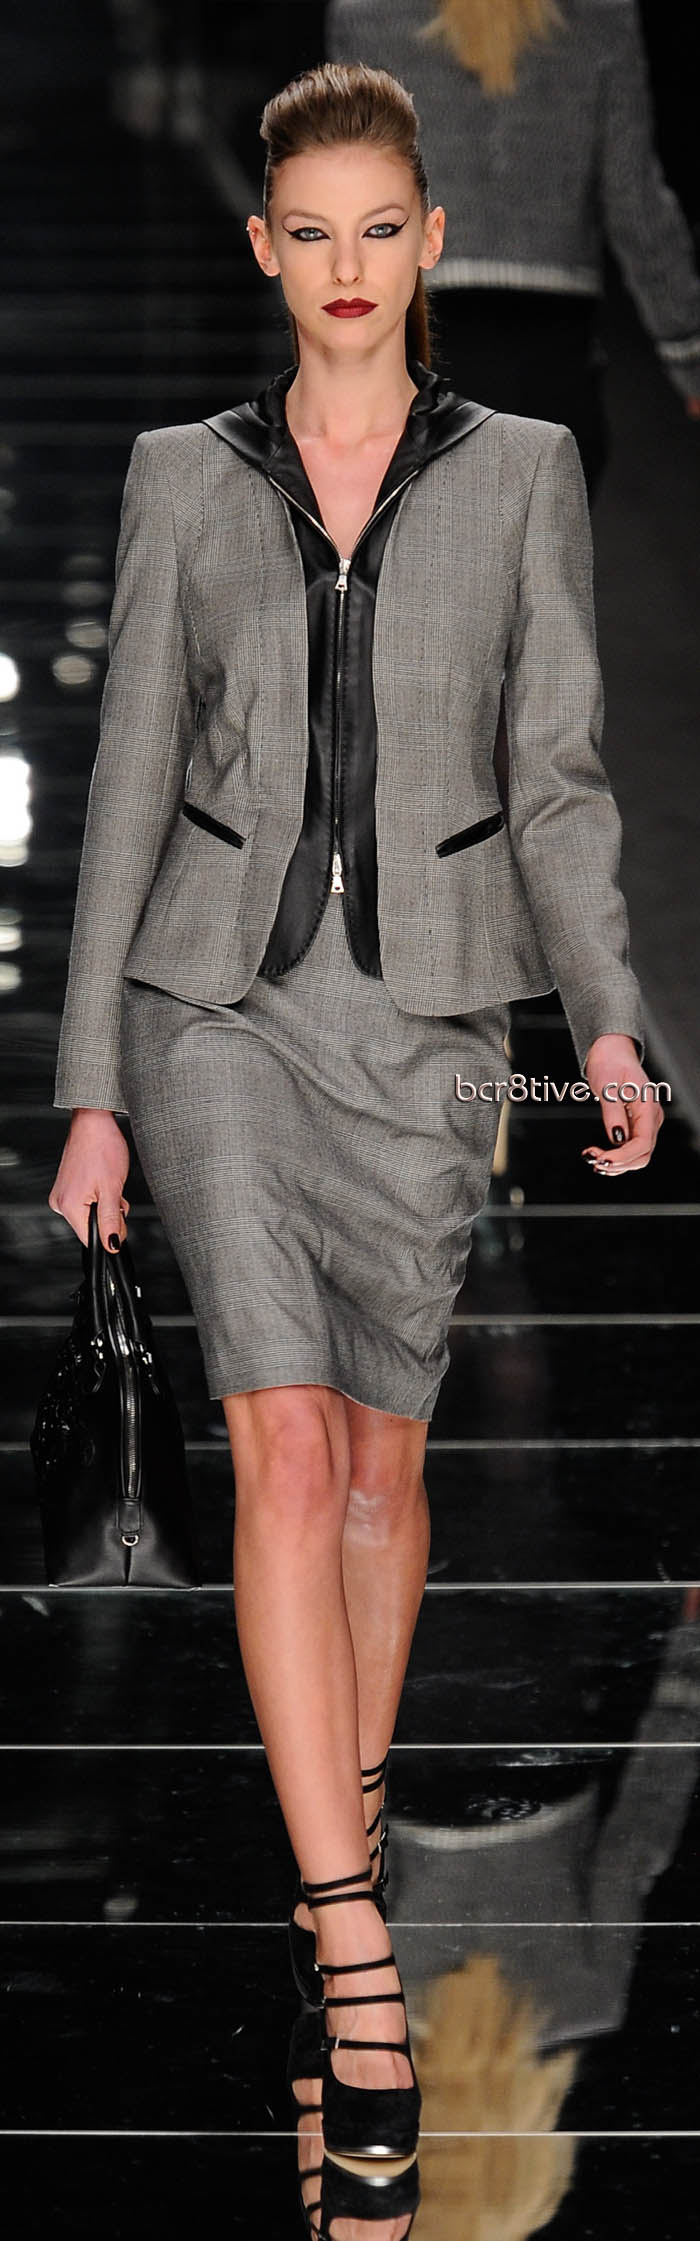 John Richmond Fall Winter 2012-13